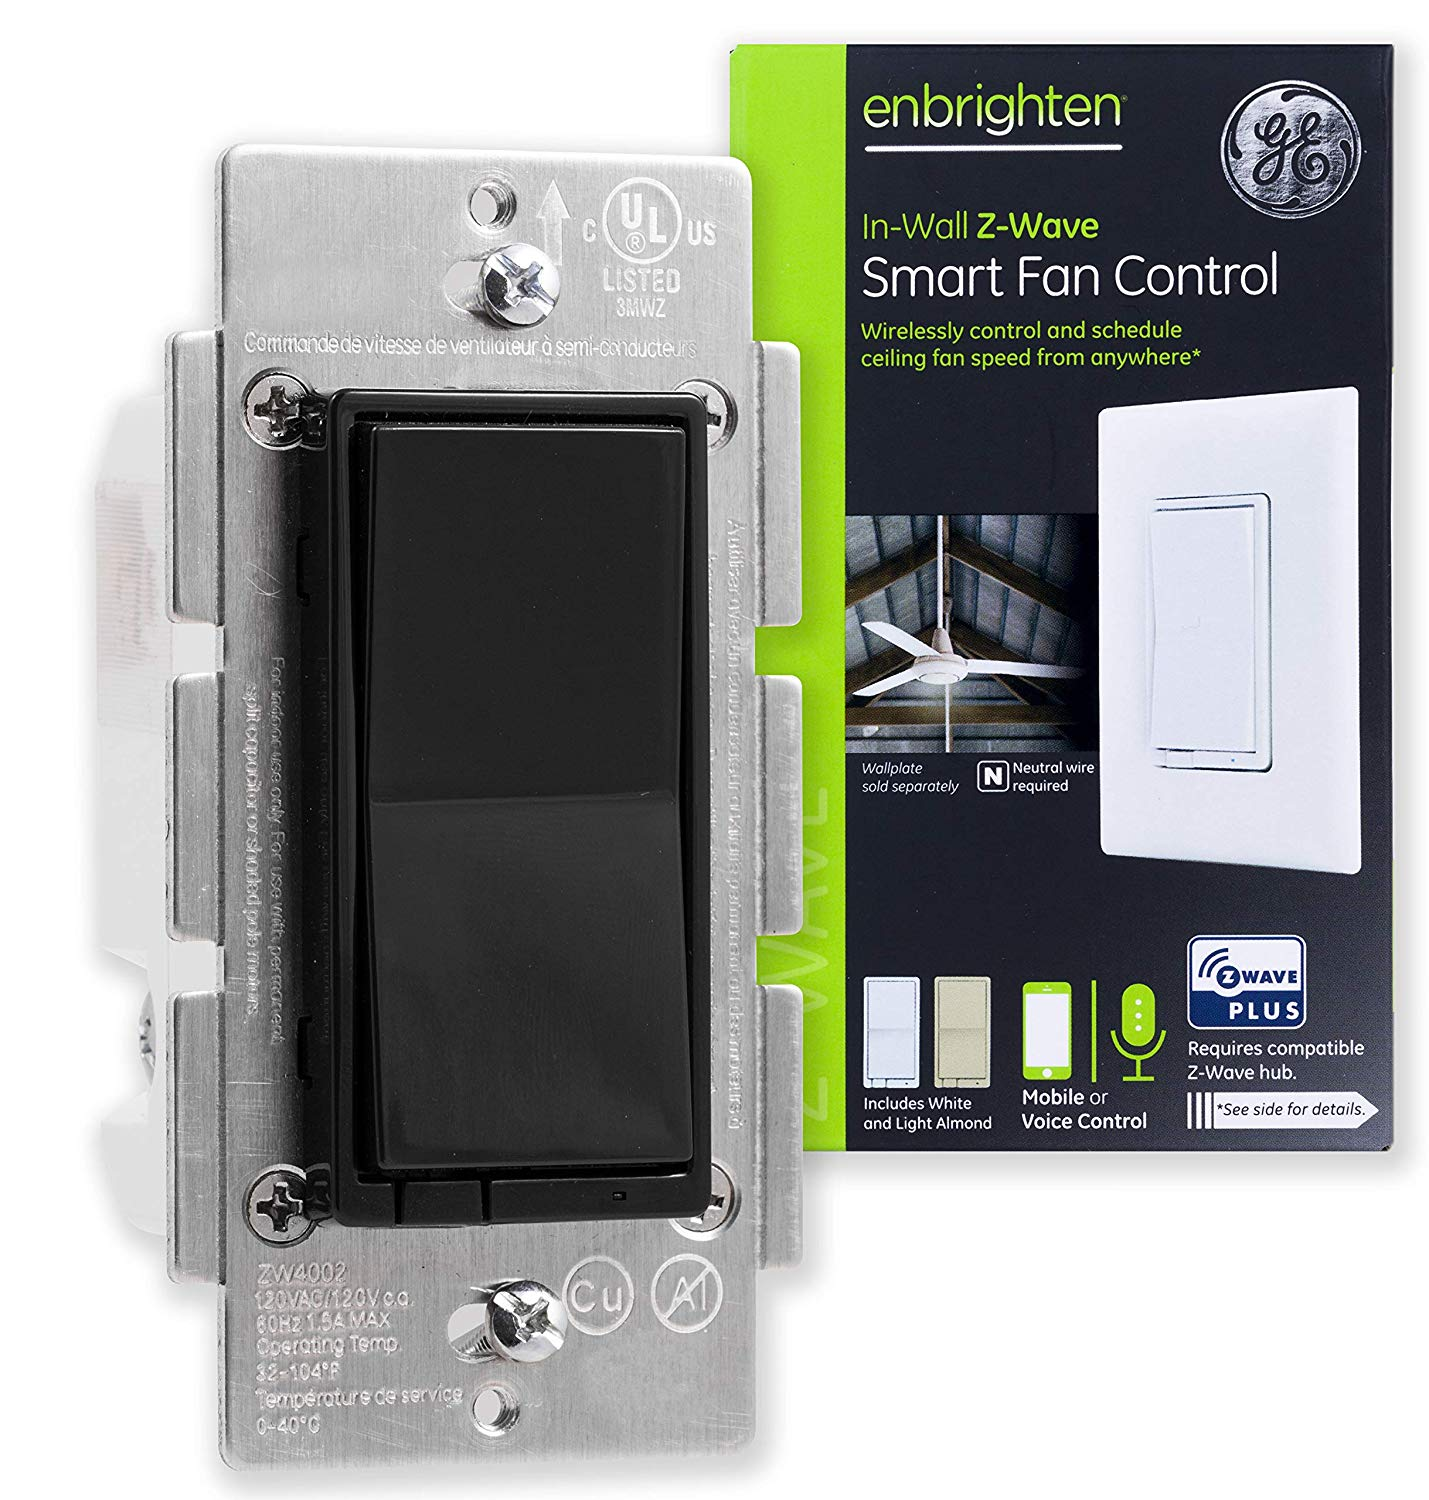 GE Enbrighten Smart Switches & Plugs Reviewed - iDISRUPTED